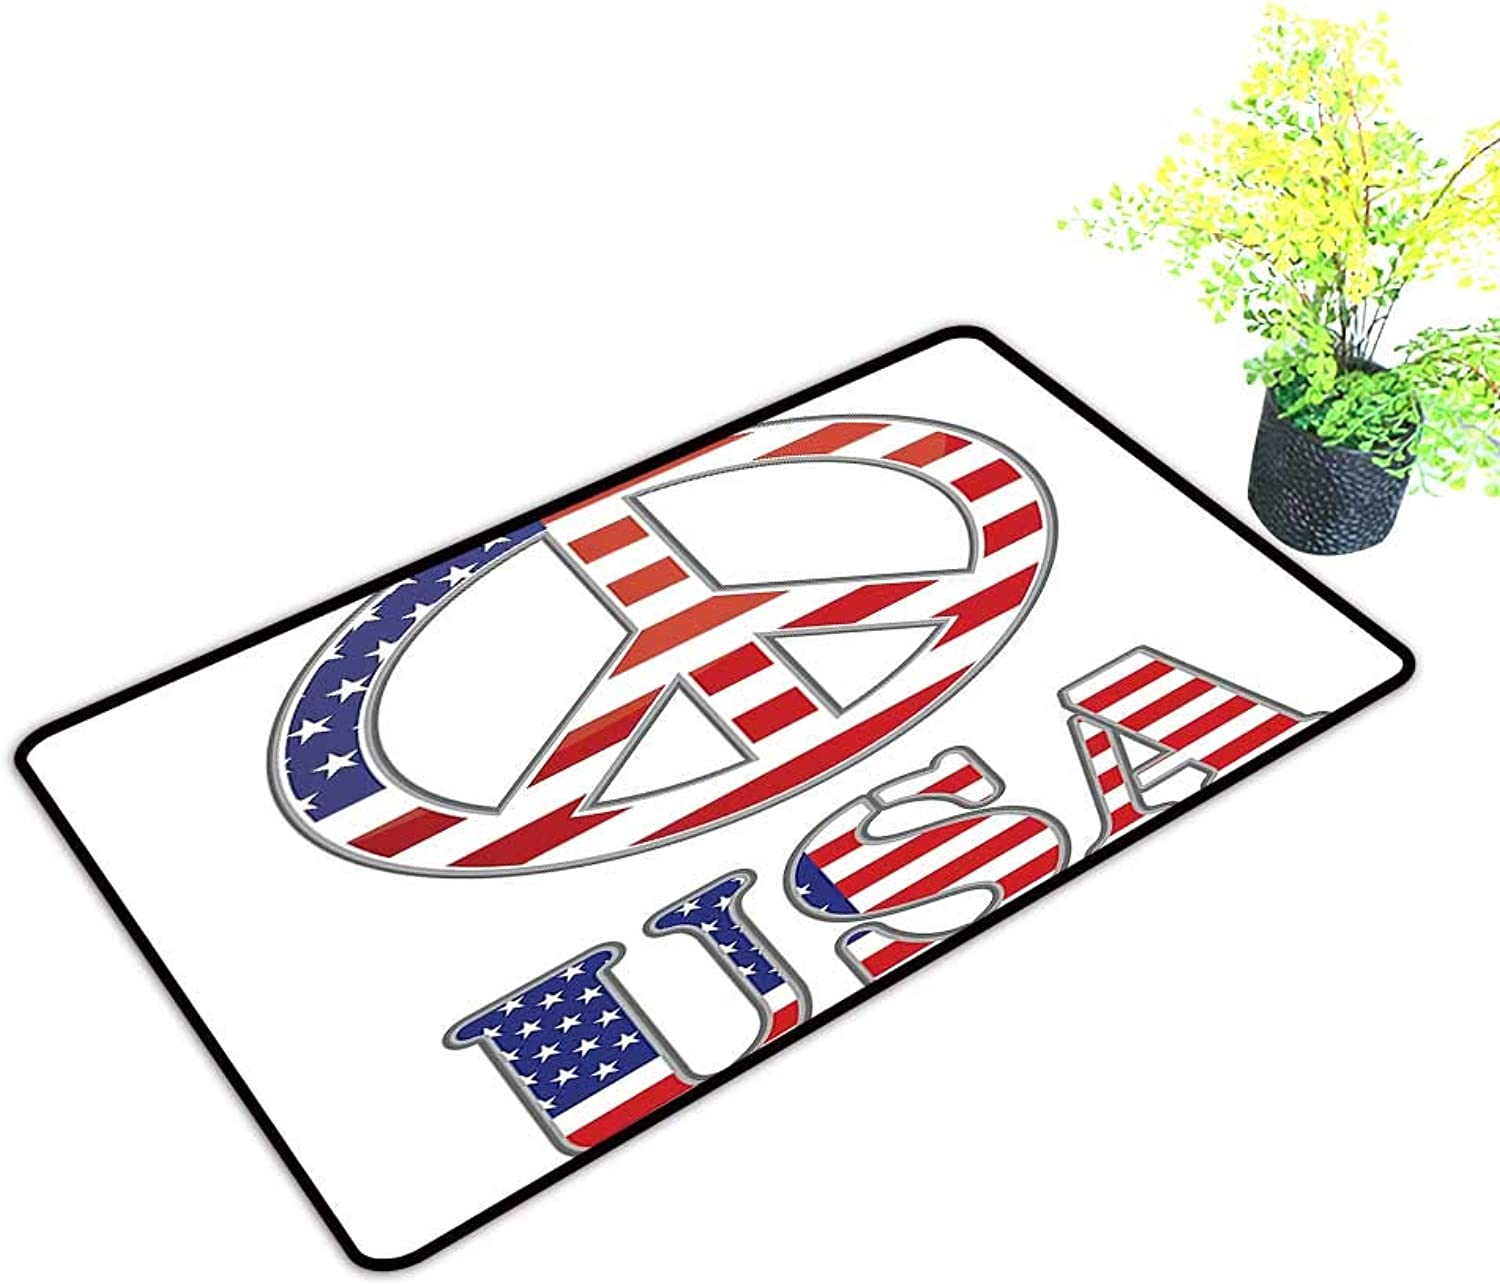 Gmnalahome Large Door Mats shoes Scraper Modern Peace Sign with USA Flag color Design Hippie Freedom No War Symbol Use for Front Door Entrance W39 x H19 INCH